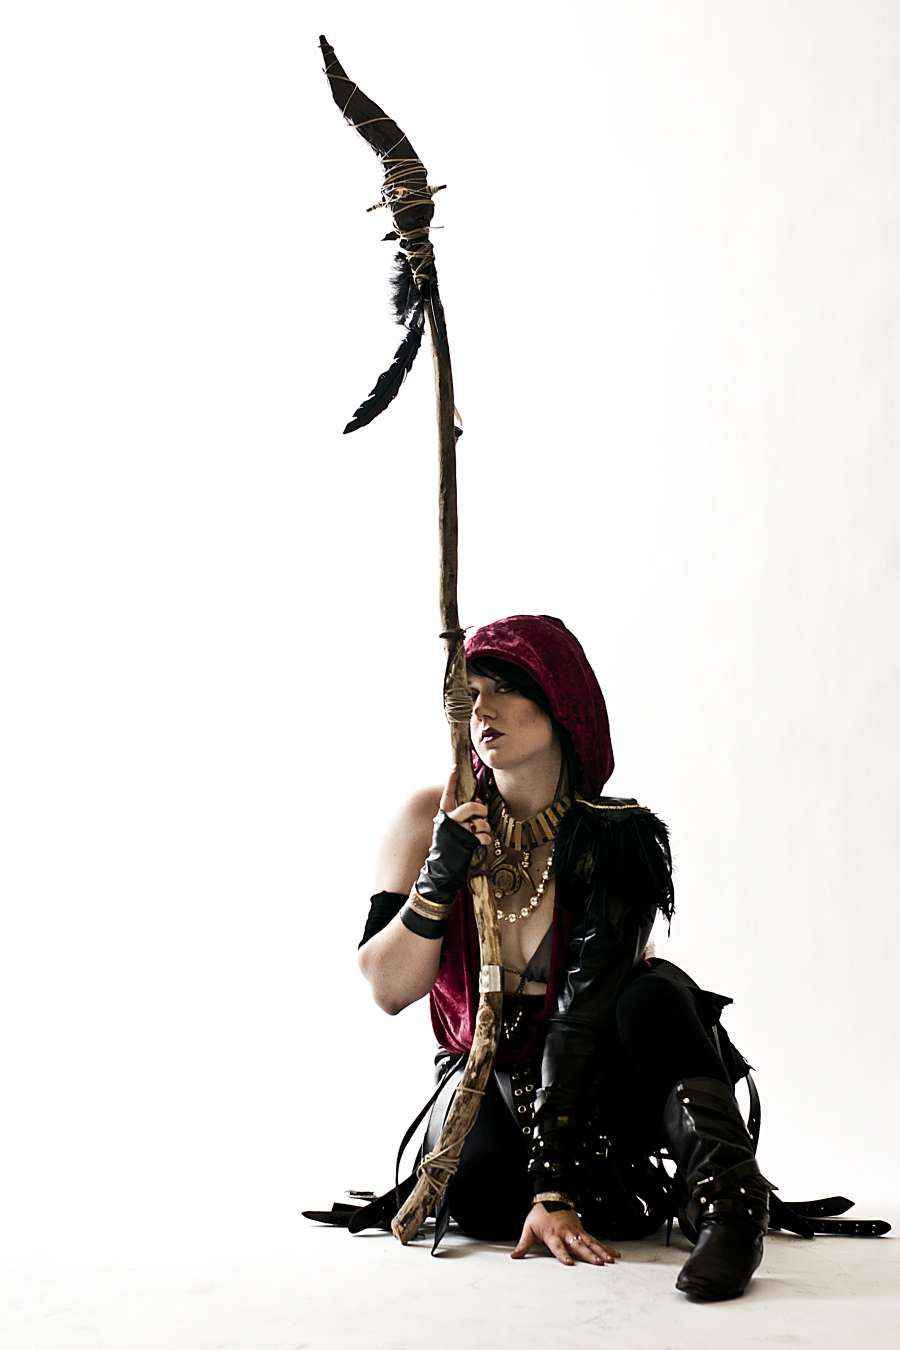 Morrigan 2 by photosynthetique